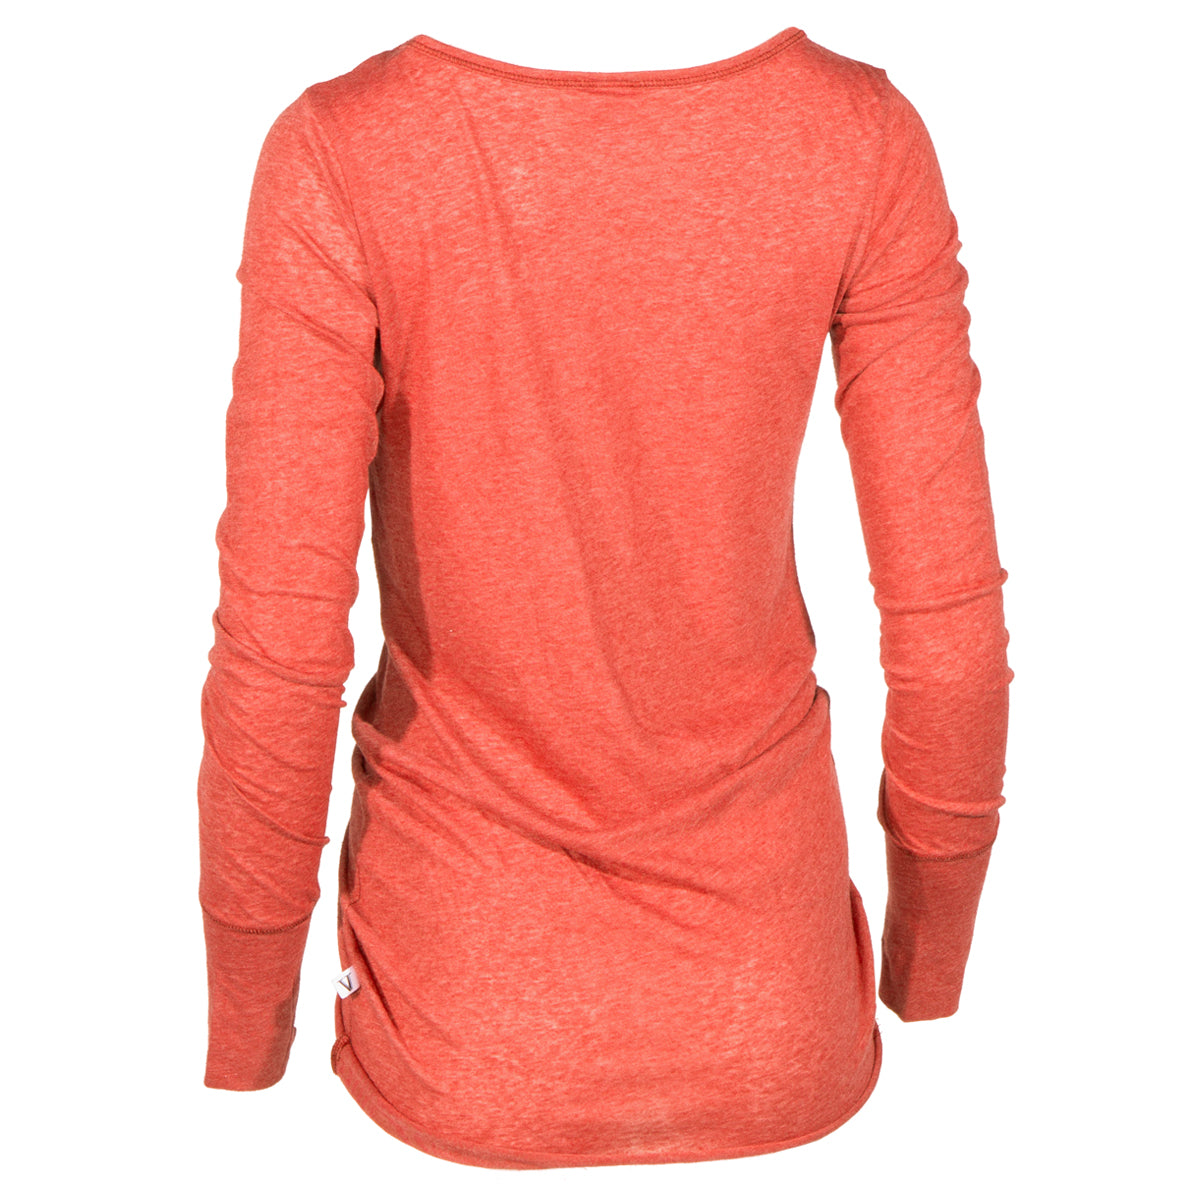 774528c0 Heather Red. Tiger Purple. Navy. Forest Green. Neon Pink. Lilac Grey.  PPACU02. PPACU02. Layla- Women's Crew Neck Soft Premium Long Sleeve Tee ...